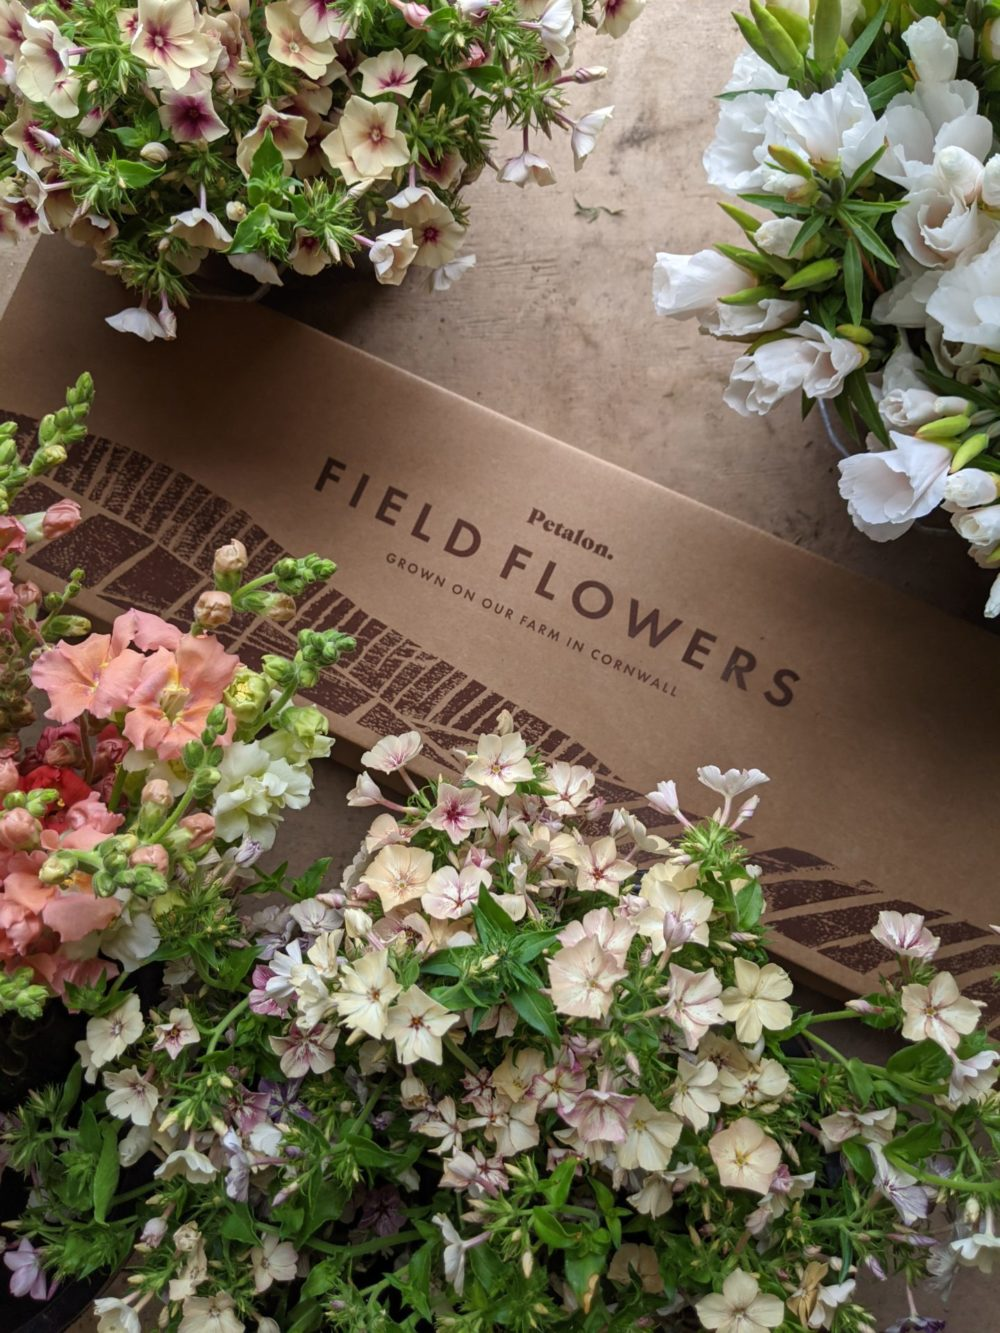 We launched our Field Flowers subscriptions this month